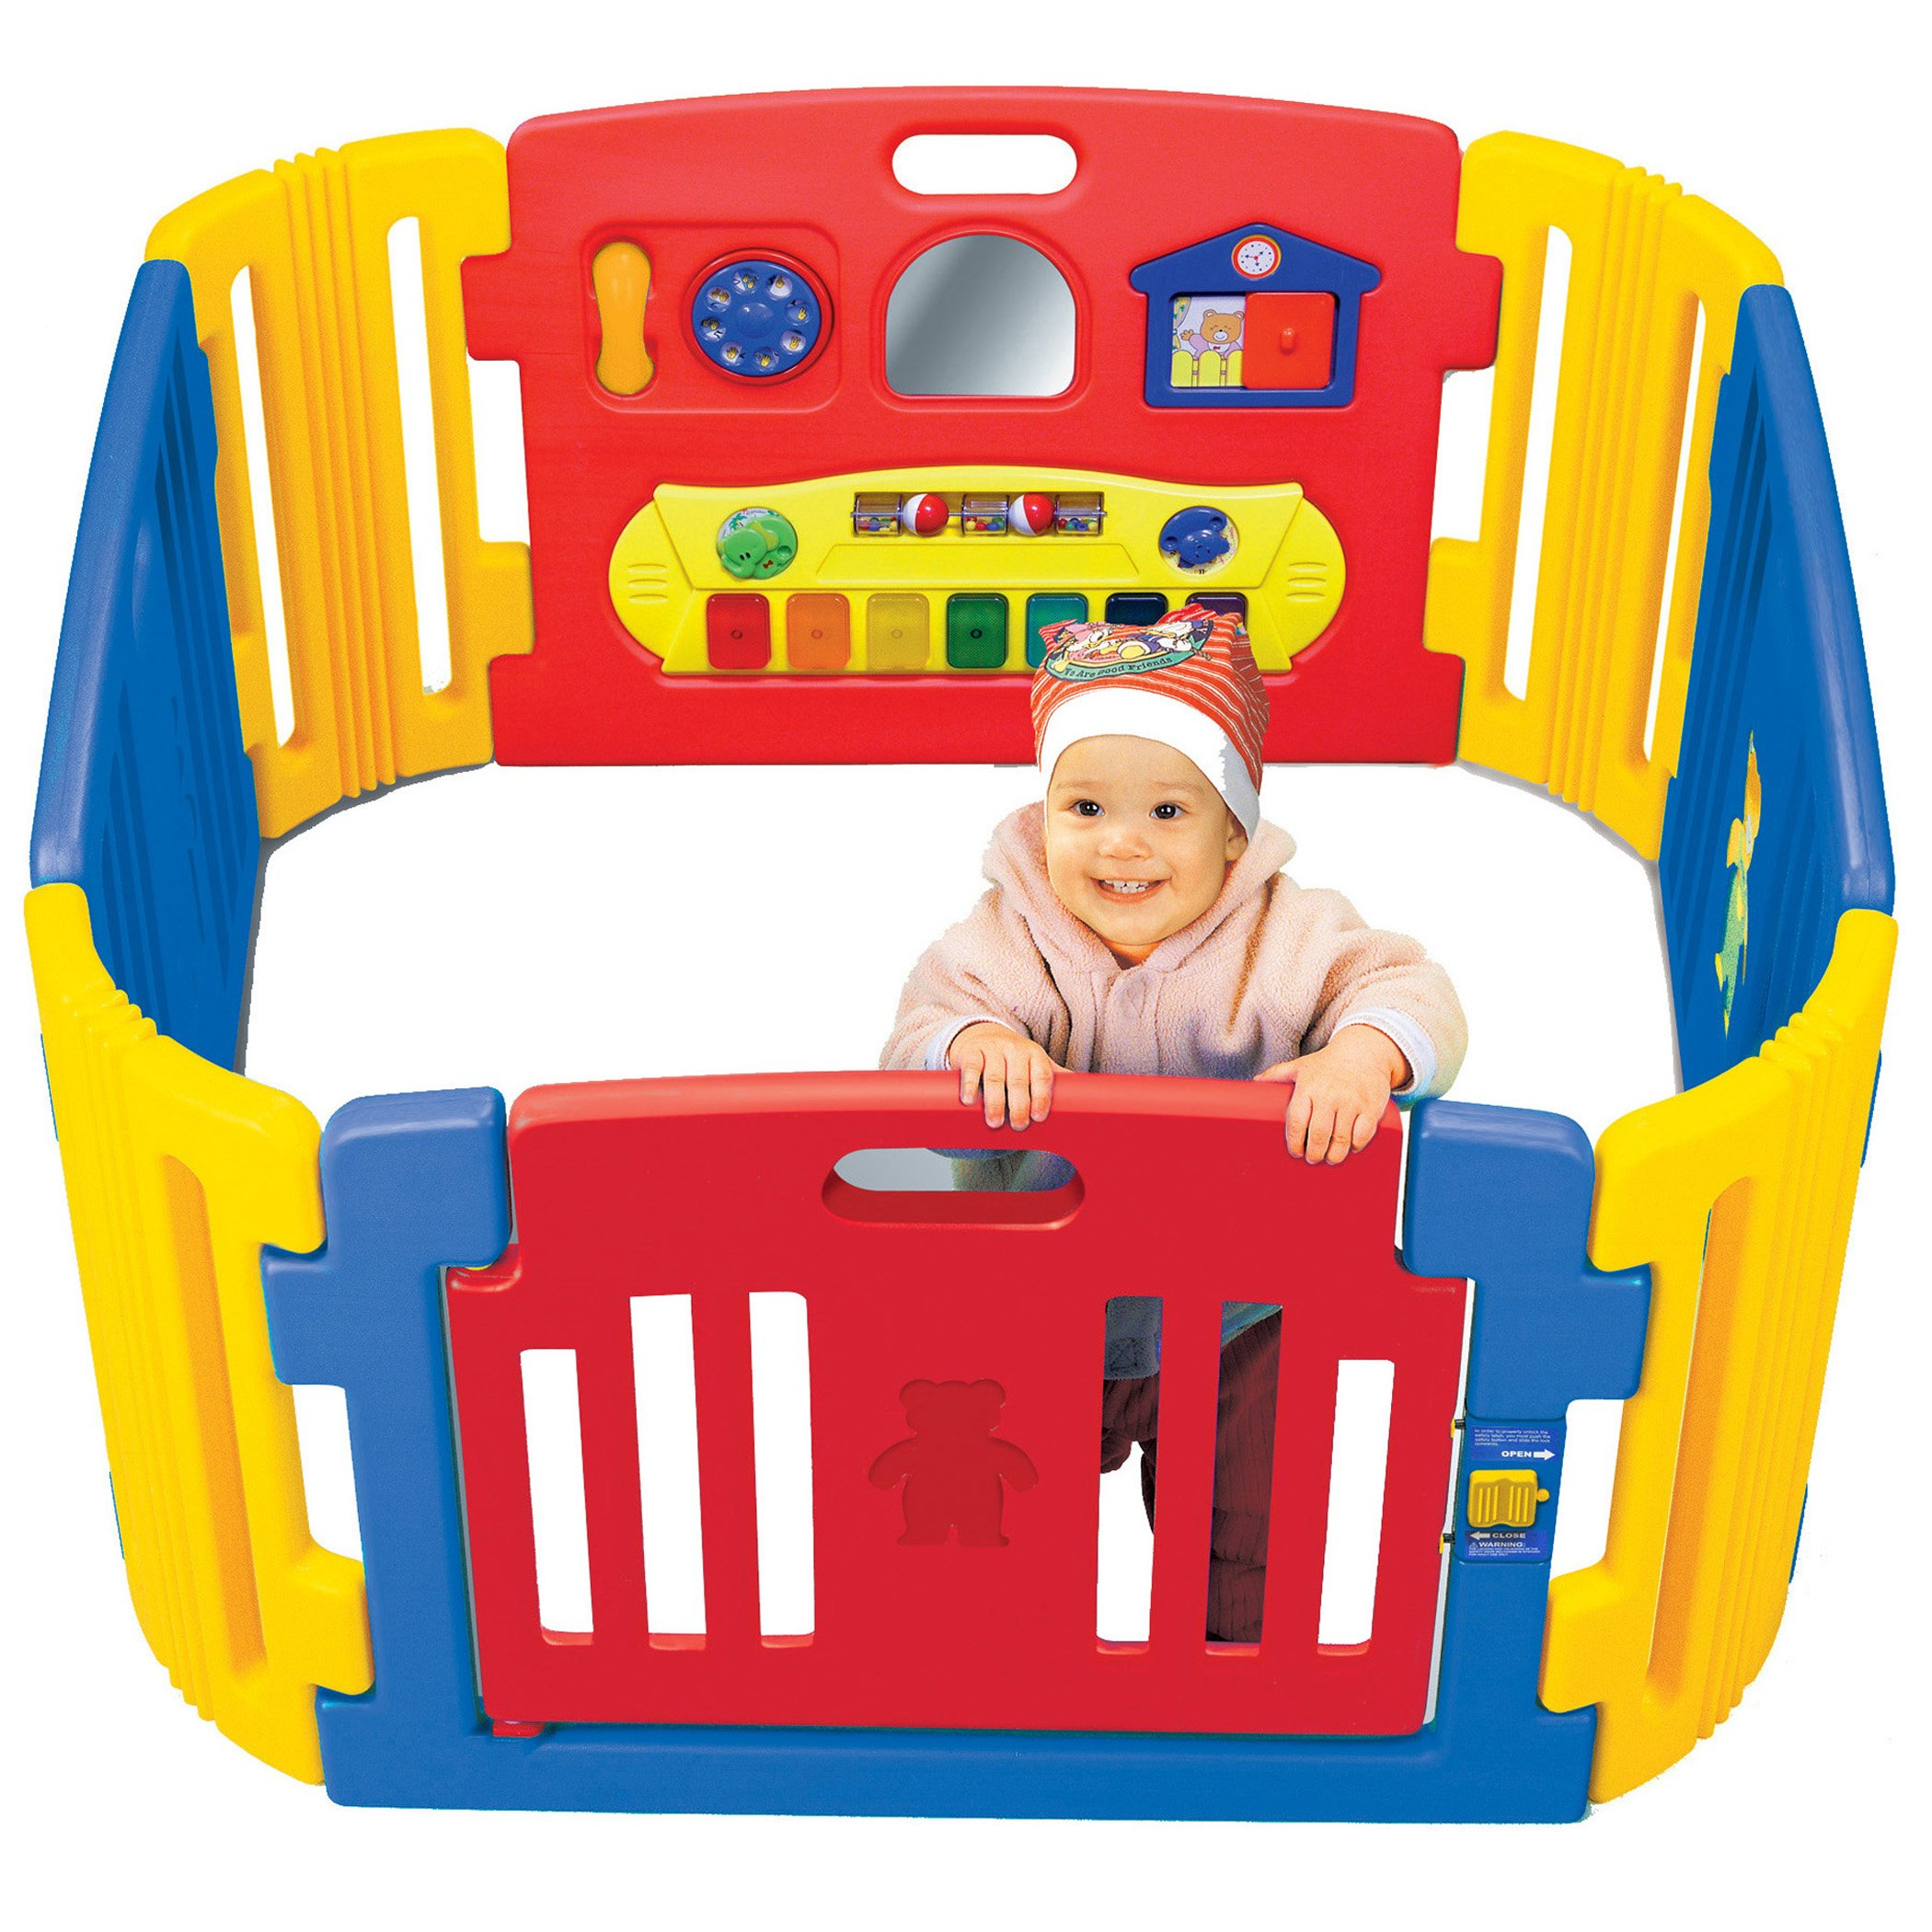 8 Toys Yeards : Little playzone playpen w electronic lights and sounds